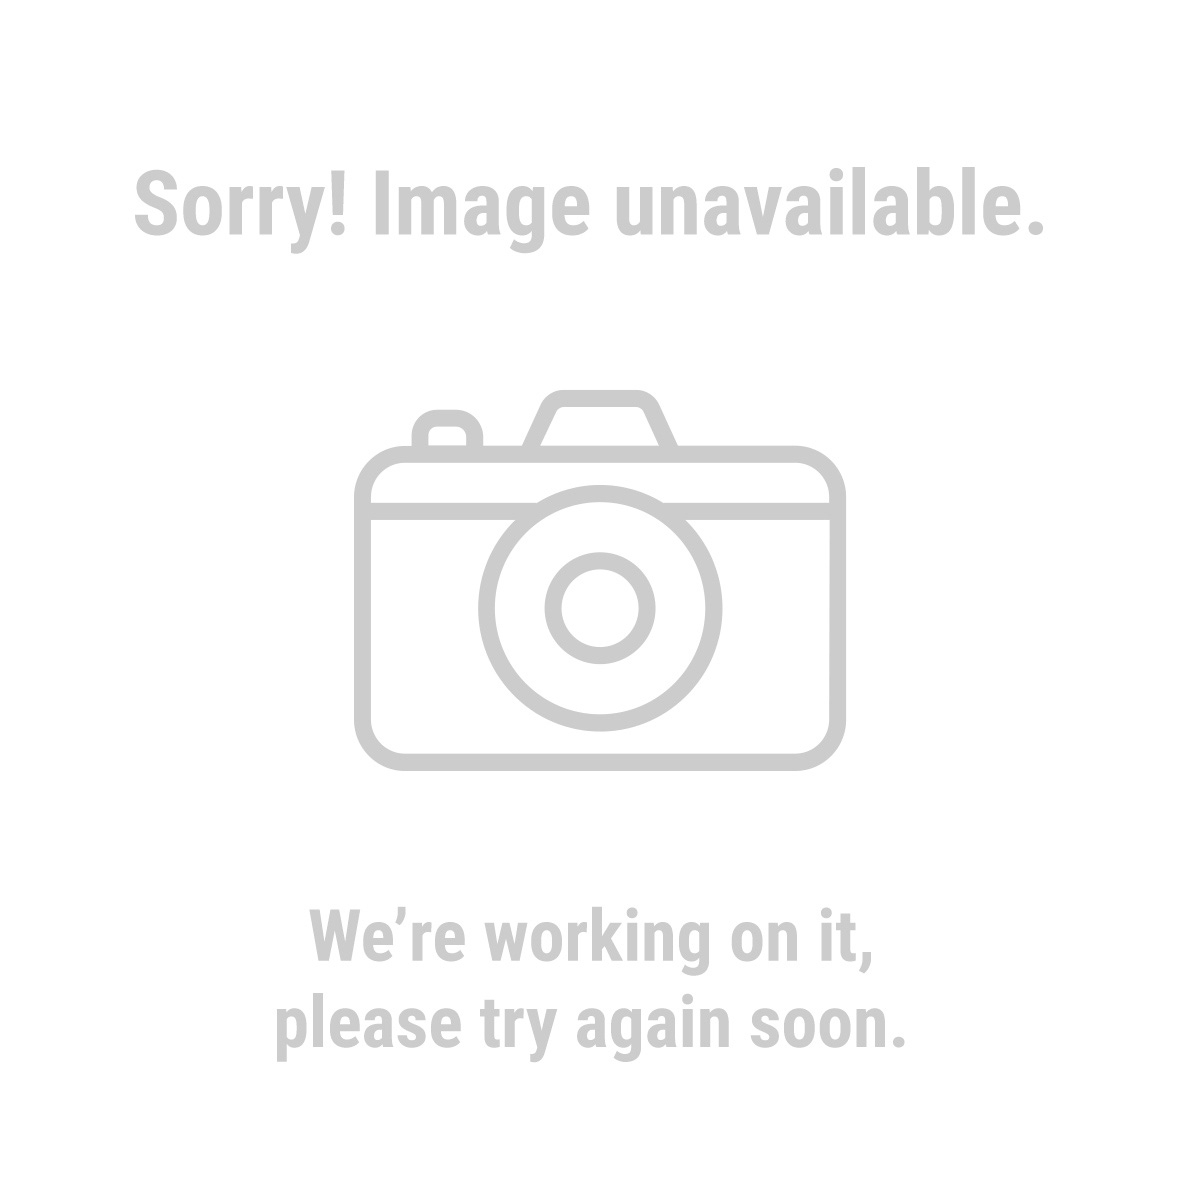 Pittsburgh® 65167 3 Piece Pen Style Precision Screwdrivers